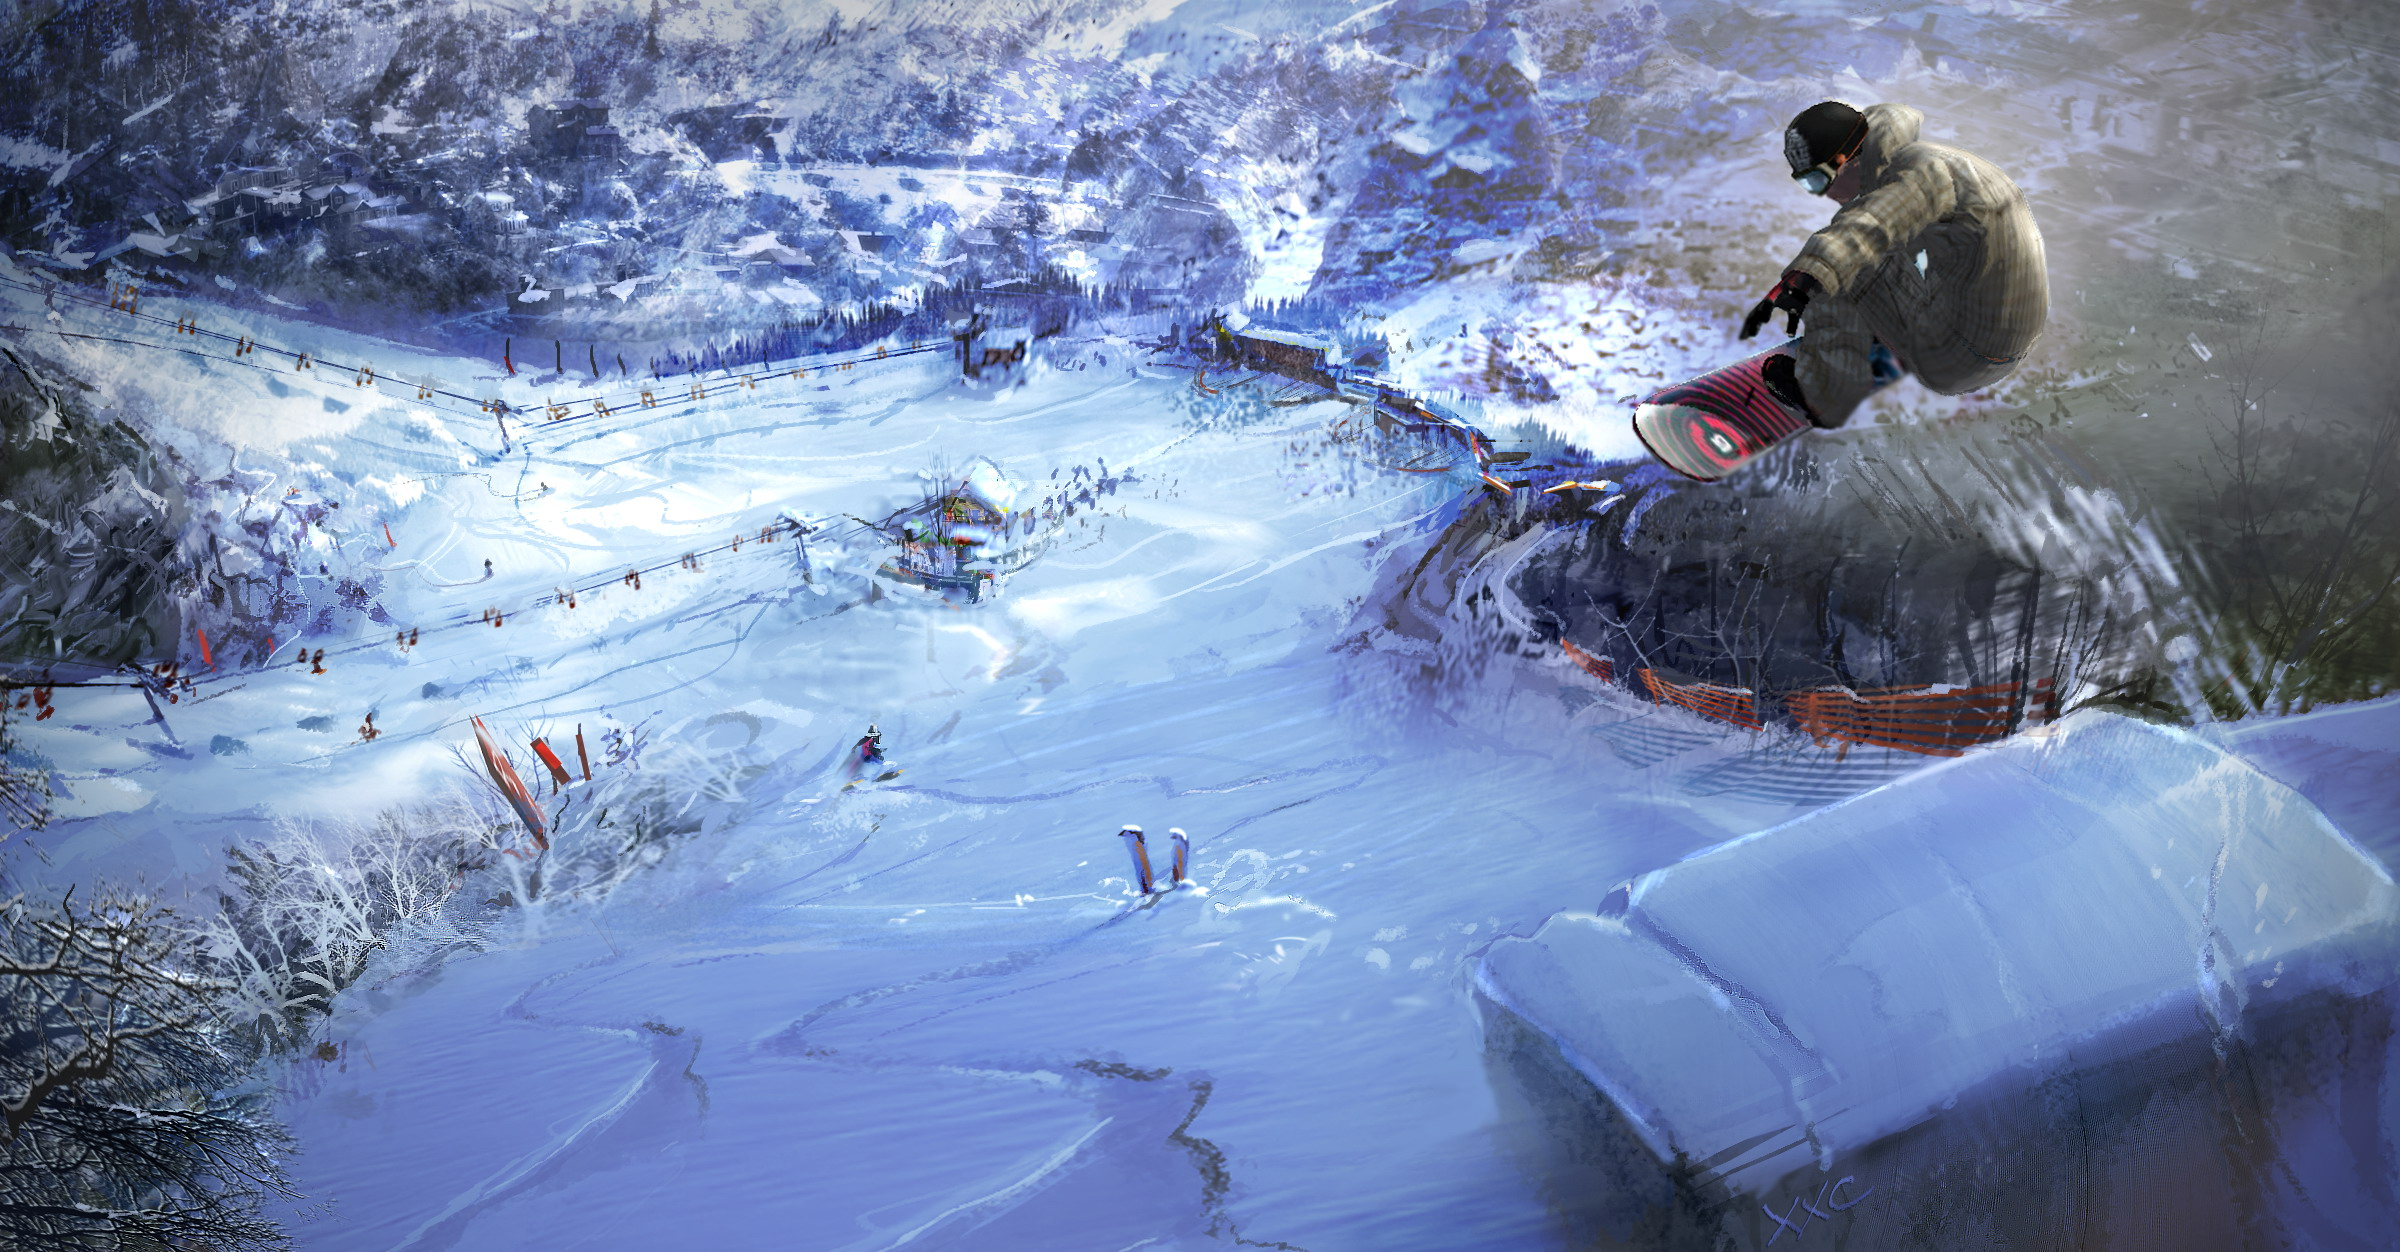 1 Shaun White Snowboarding Hd Wallpapers Background Images Wallpaper Abyss